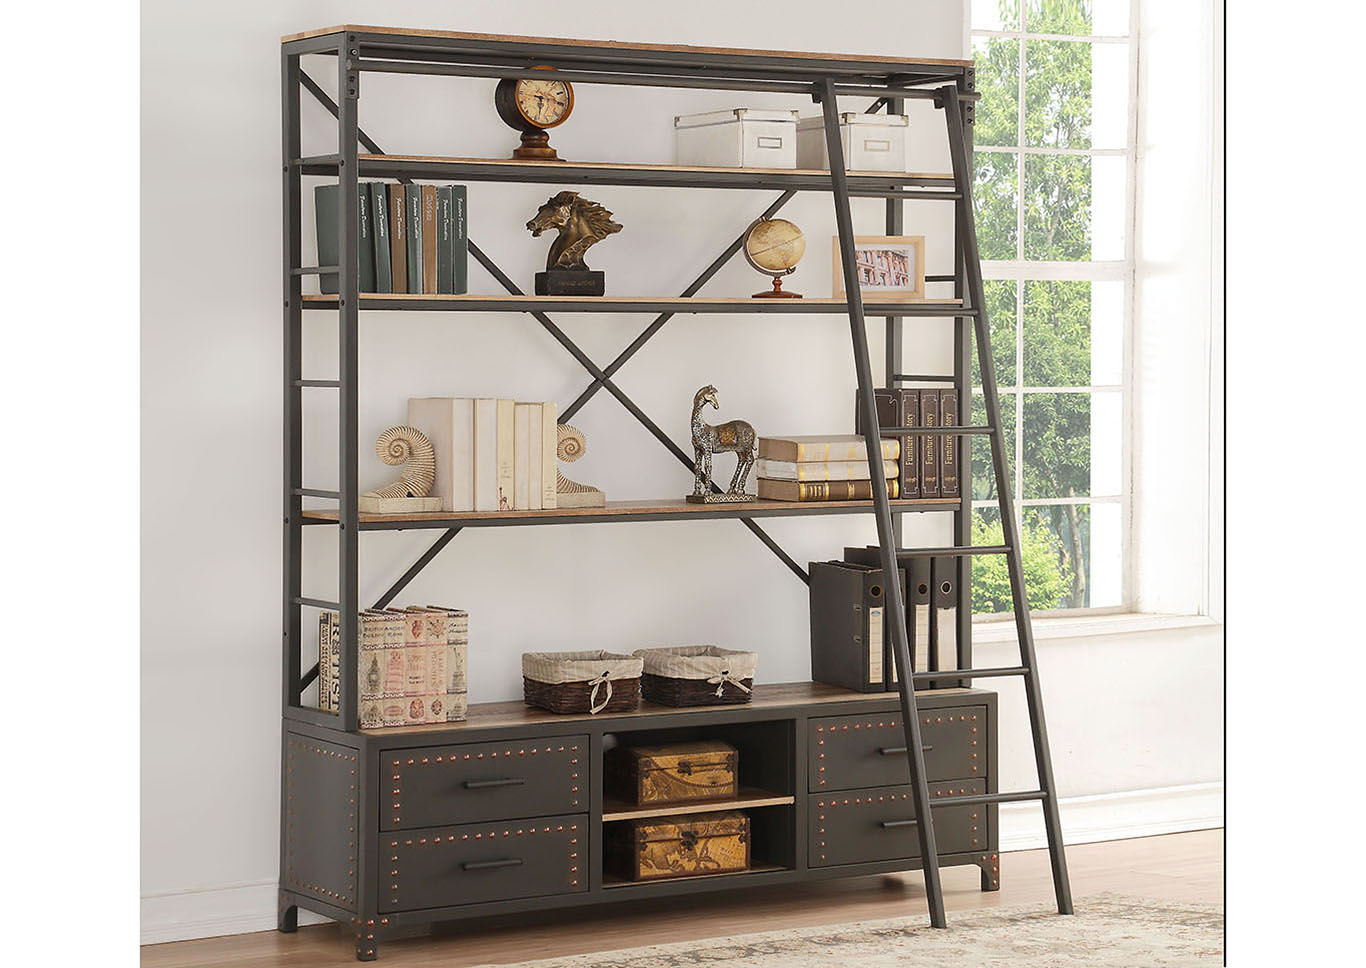 Actaki Black Bookcase,Acme